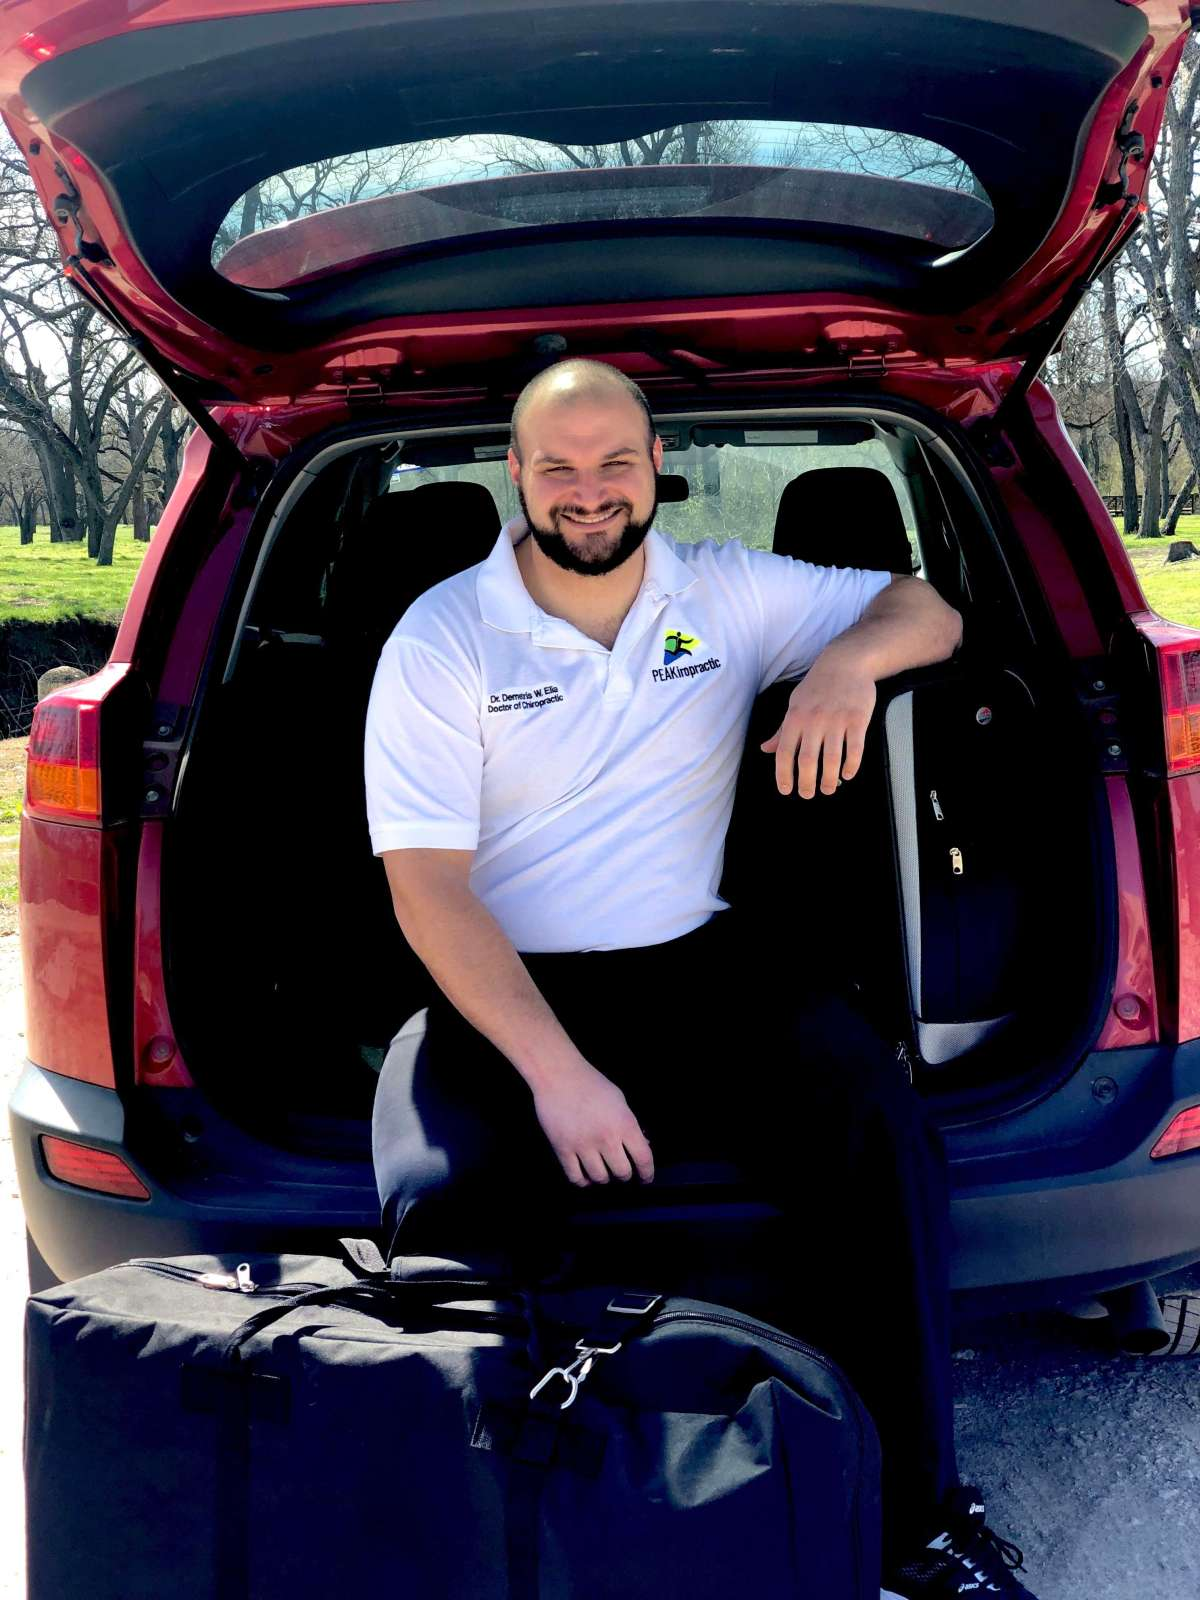 The Mobile Chiropractor of Dallas - Fort Worth!  Mobile Chiropractic Services 7 days a week, including weekends. Chiropractic adjustments, and massage therapy!